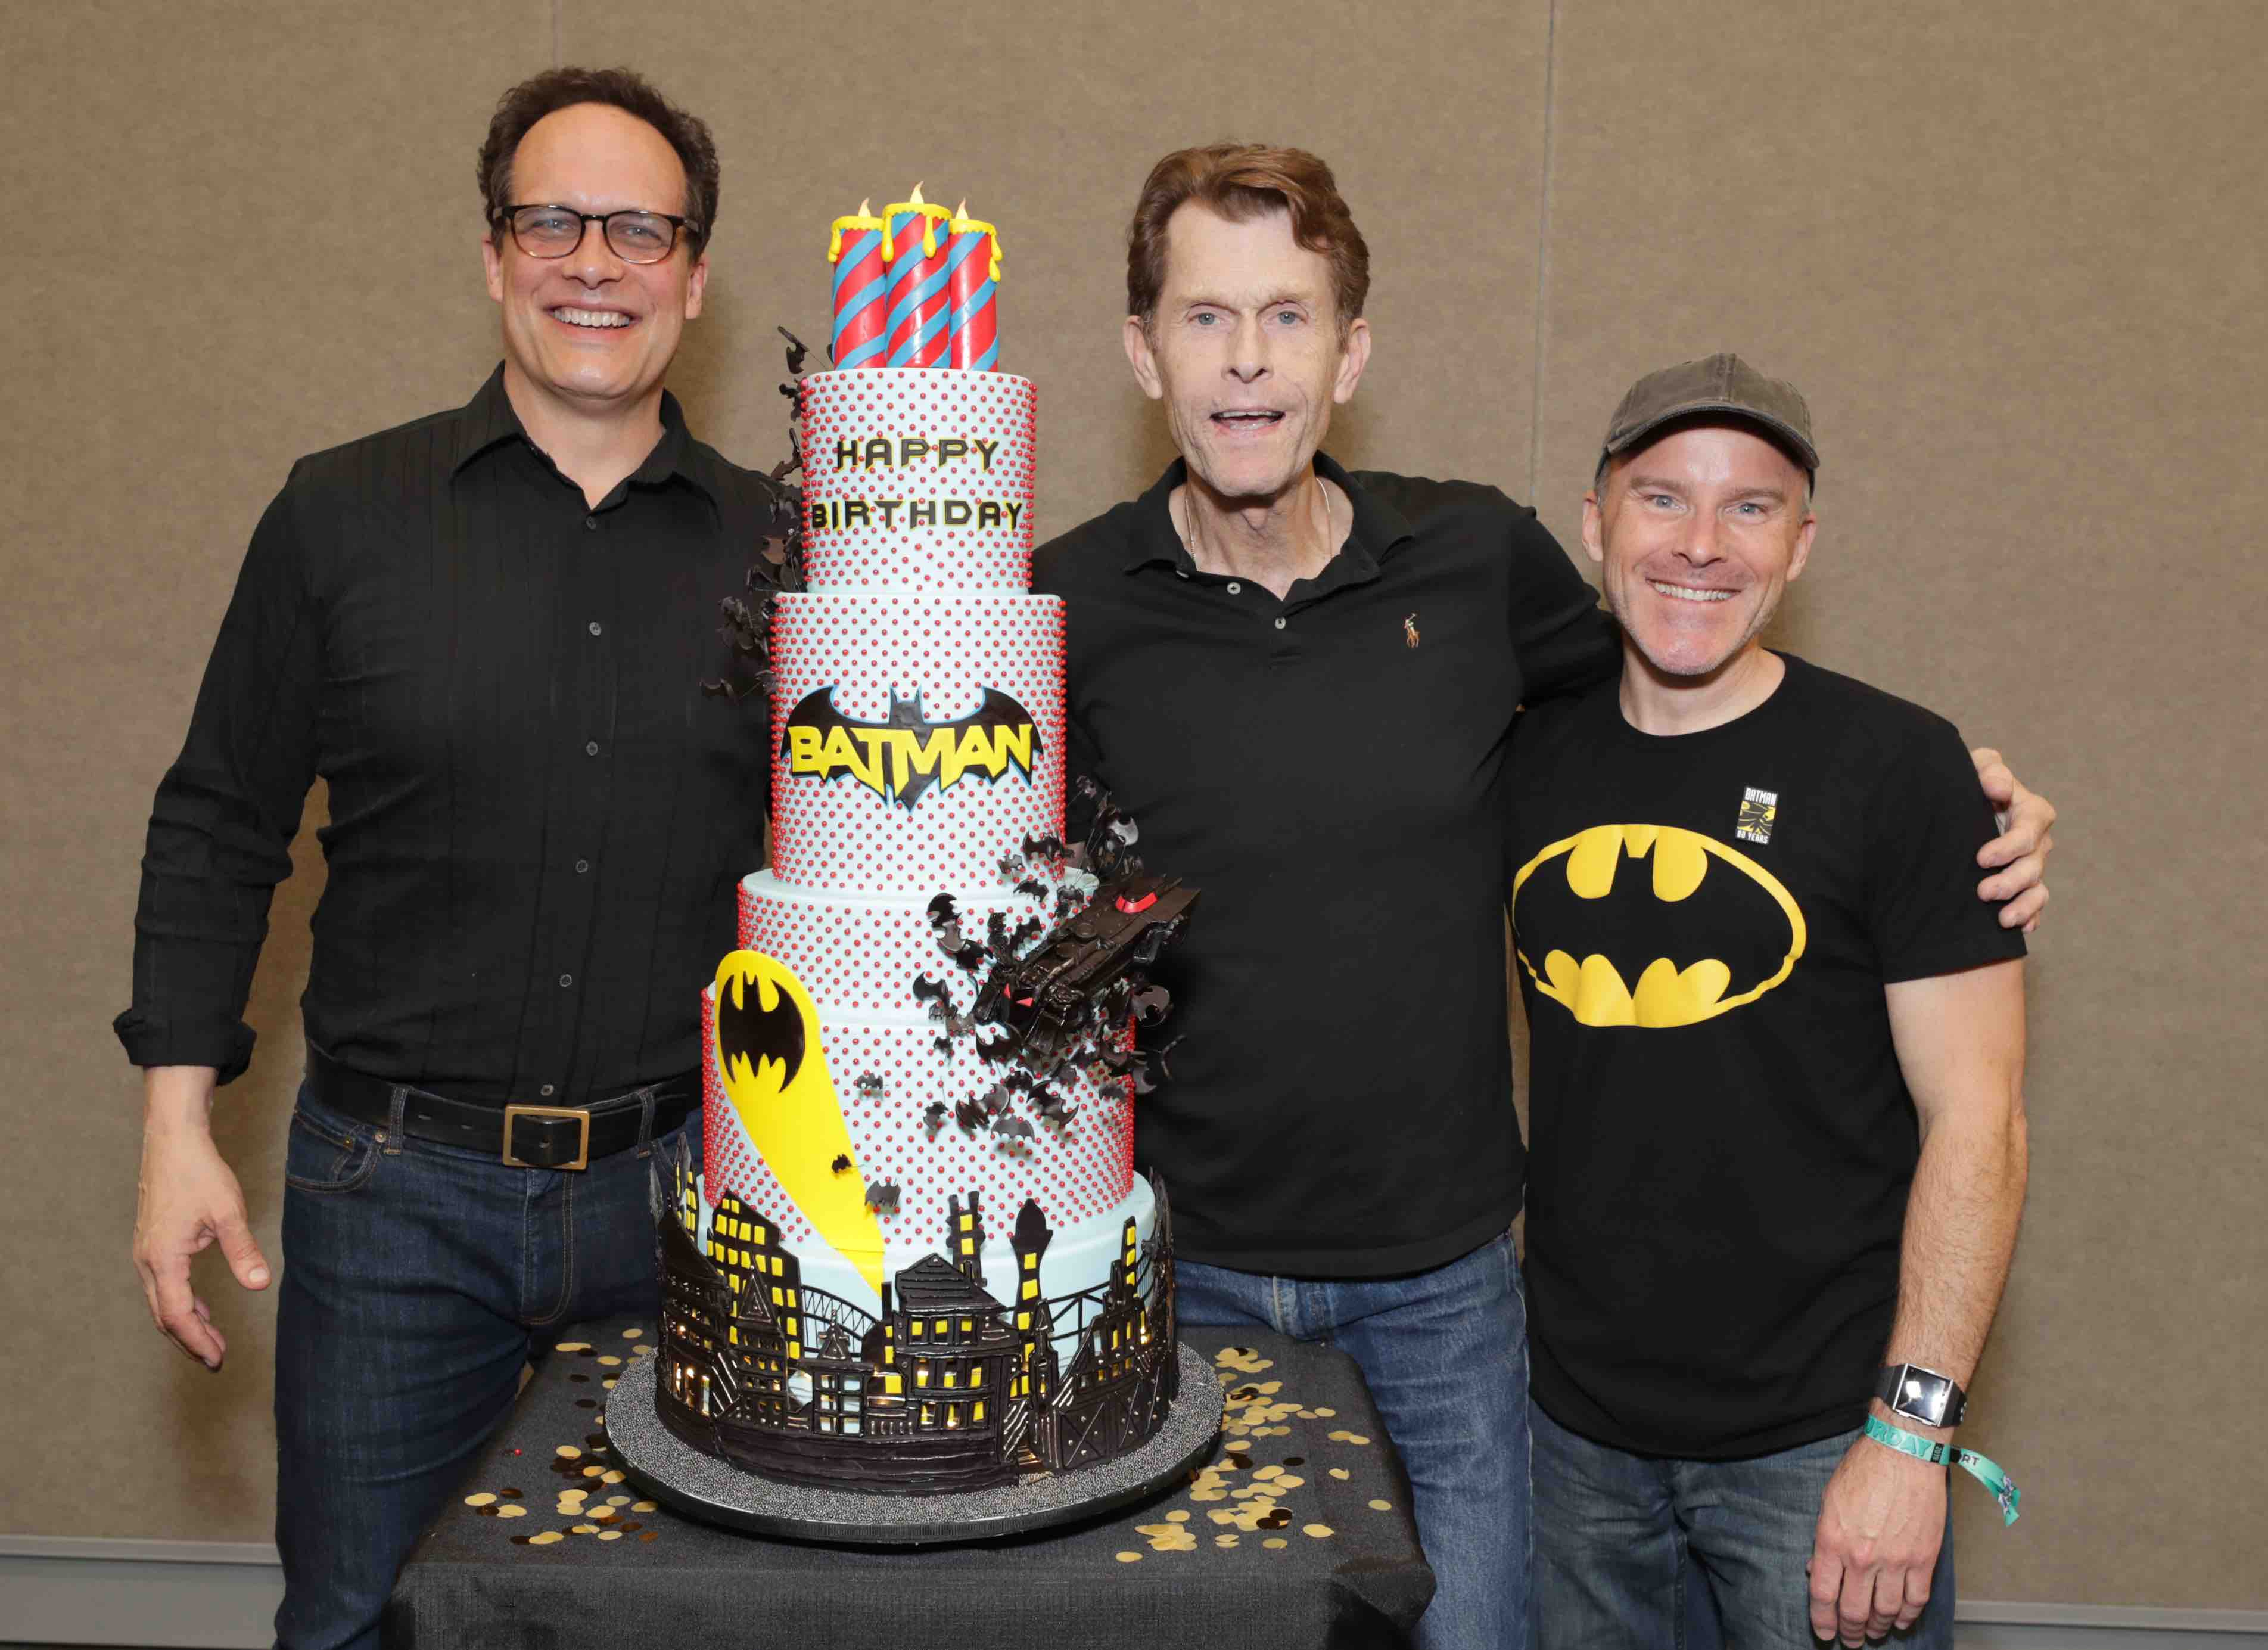 Diedrich Bader, Kevin Conroy and Roger Craig Smith